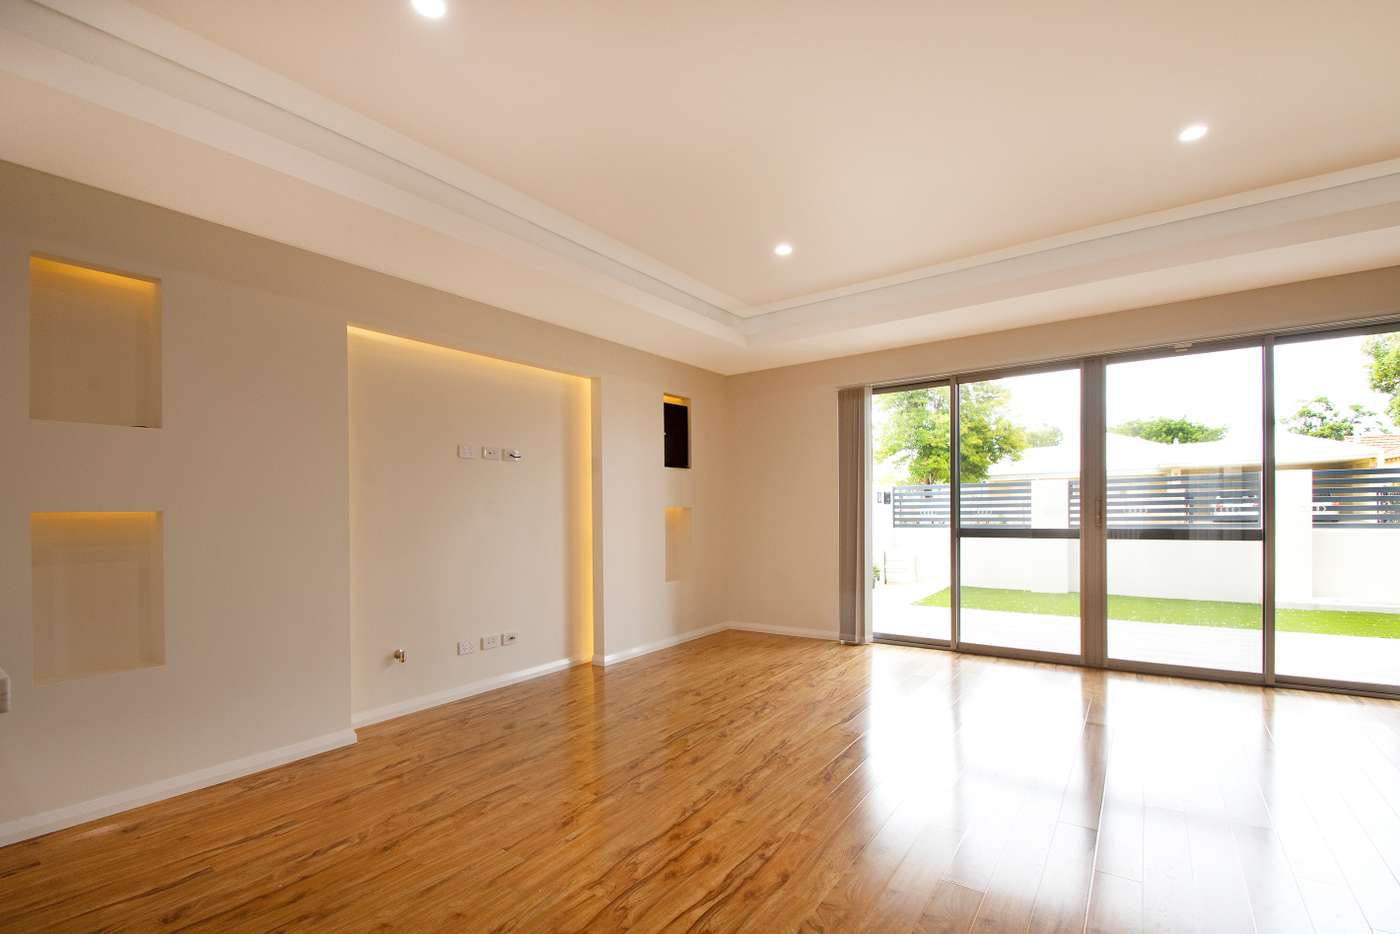 Sixth view of Homely house listing, A/14 Smith Street, Dianella WA 6059